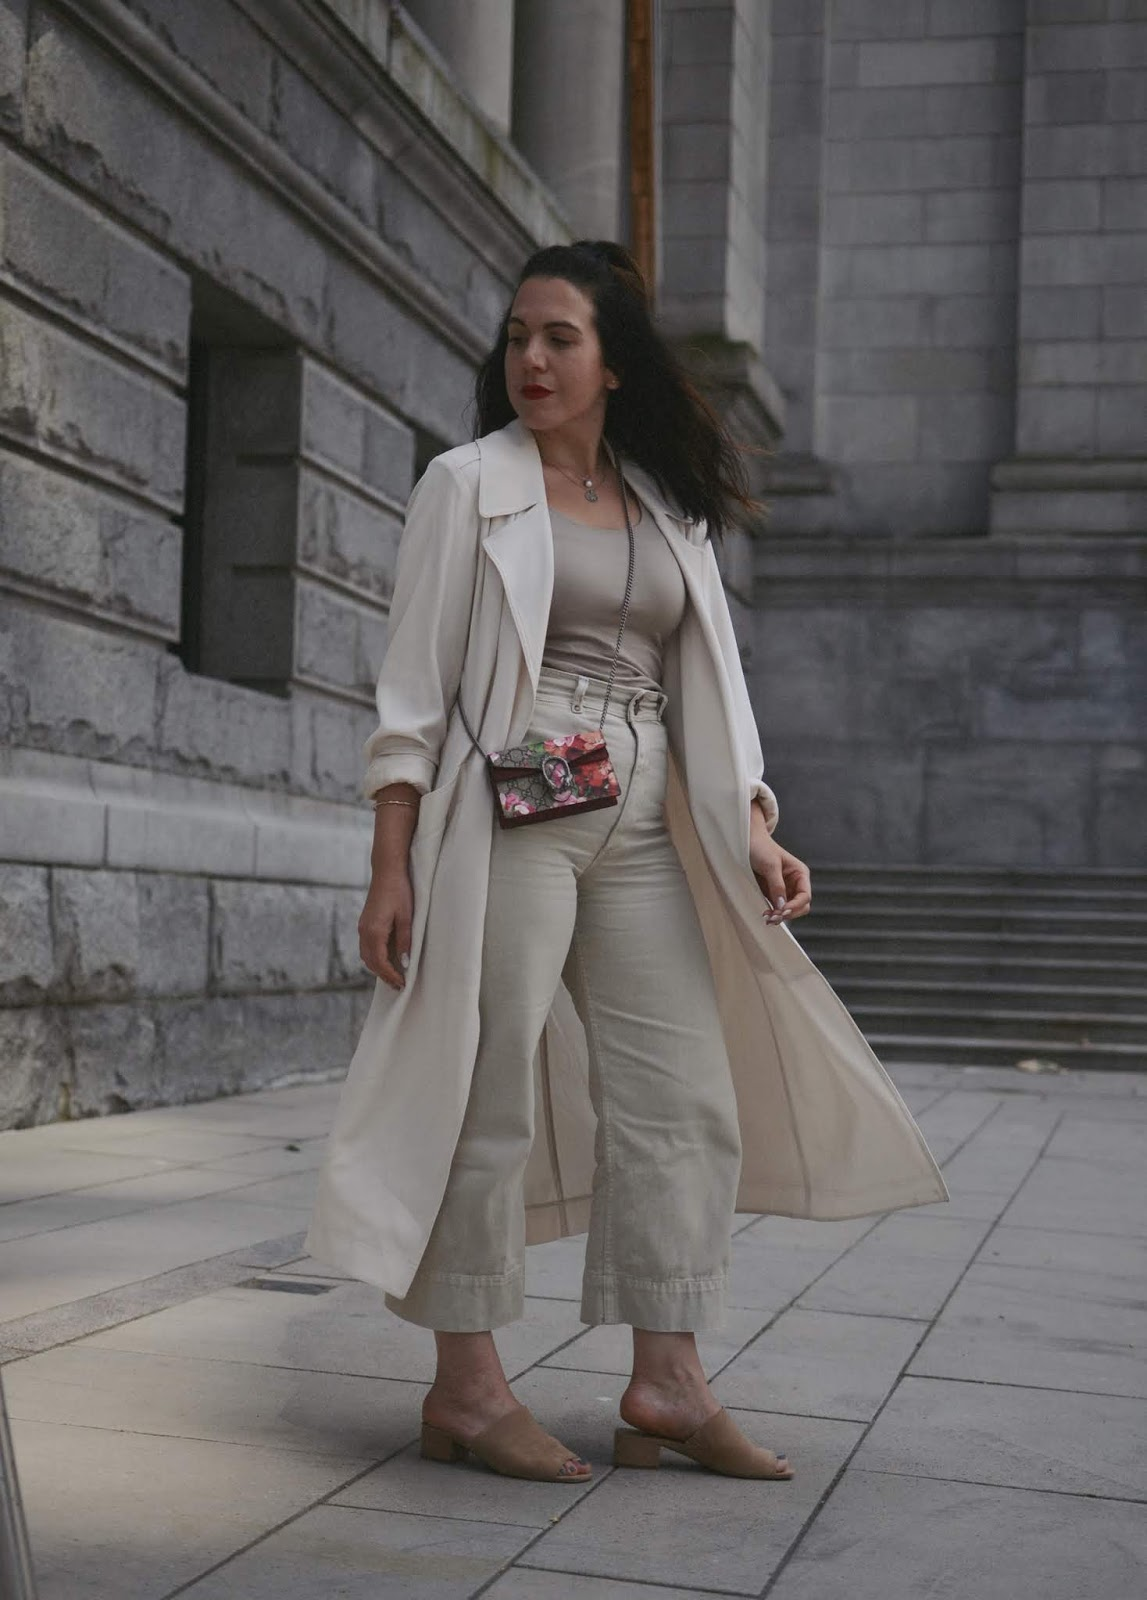 All beige outfit idea monochrome aritzia duster jacket thrills denim culottes le chateau suede mules gucci supreme mini bag